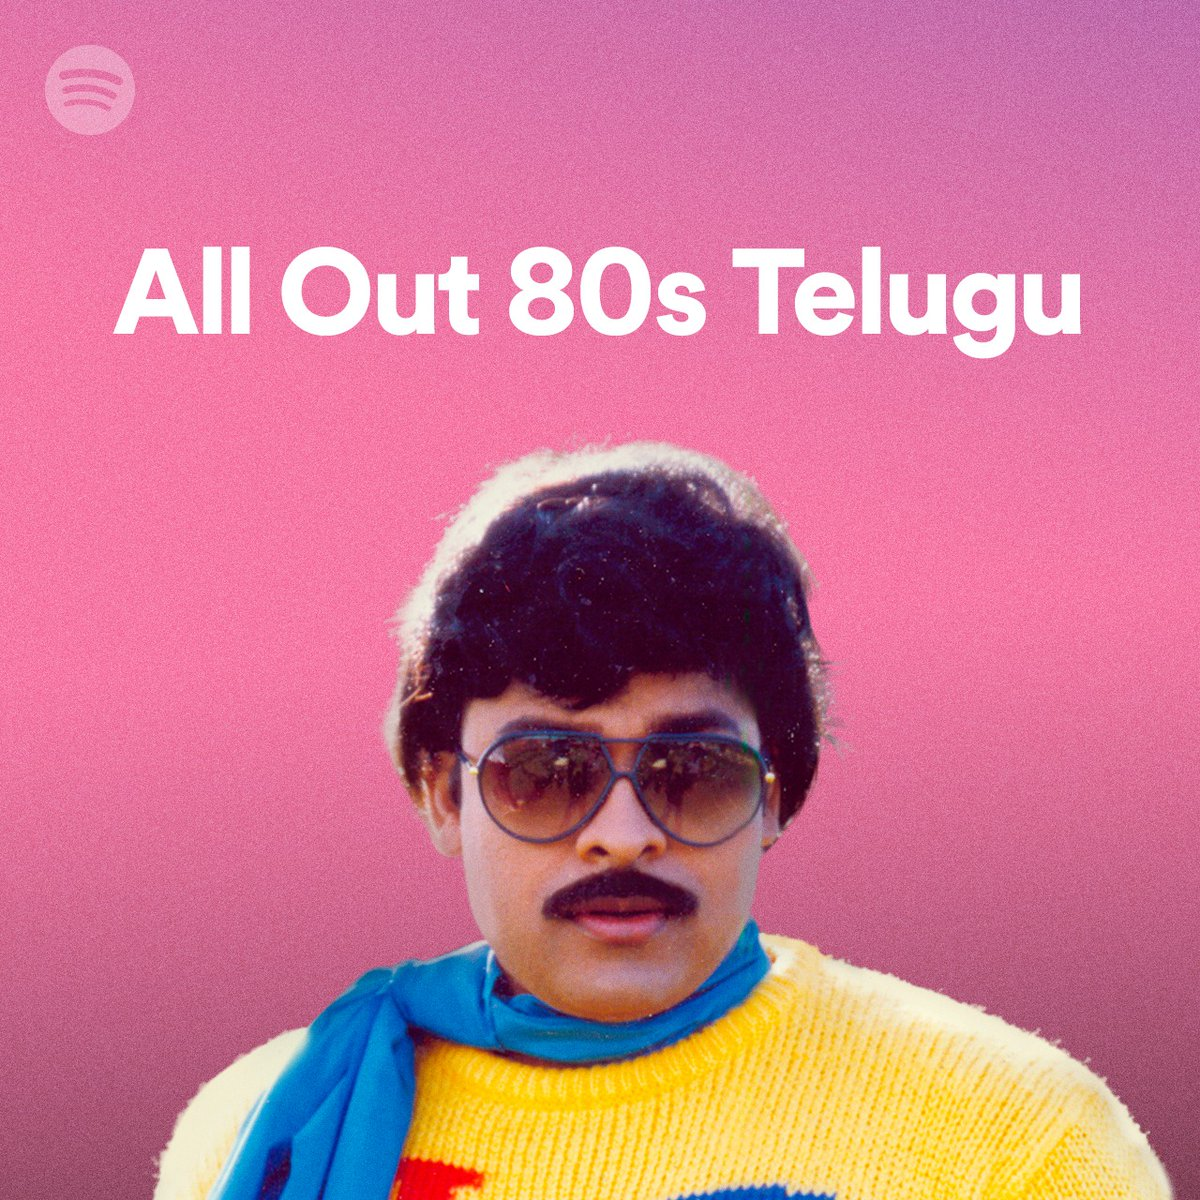 All the super-hits Romantic Telugu songs wrapped into one playlist! 🎶♥️  Listen it only on @spotifyindia   ⏯  https://t.co/BoAG7omQ2D  #Allout80sTelugu https://t.co/V54cuuVKSH